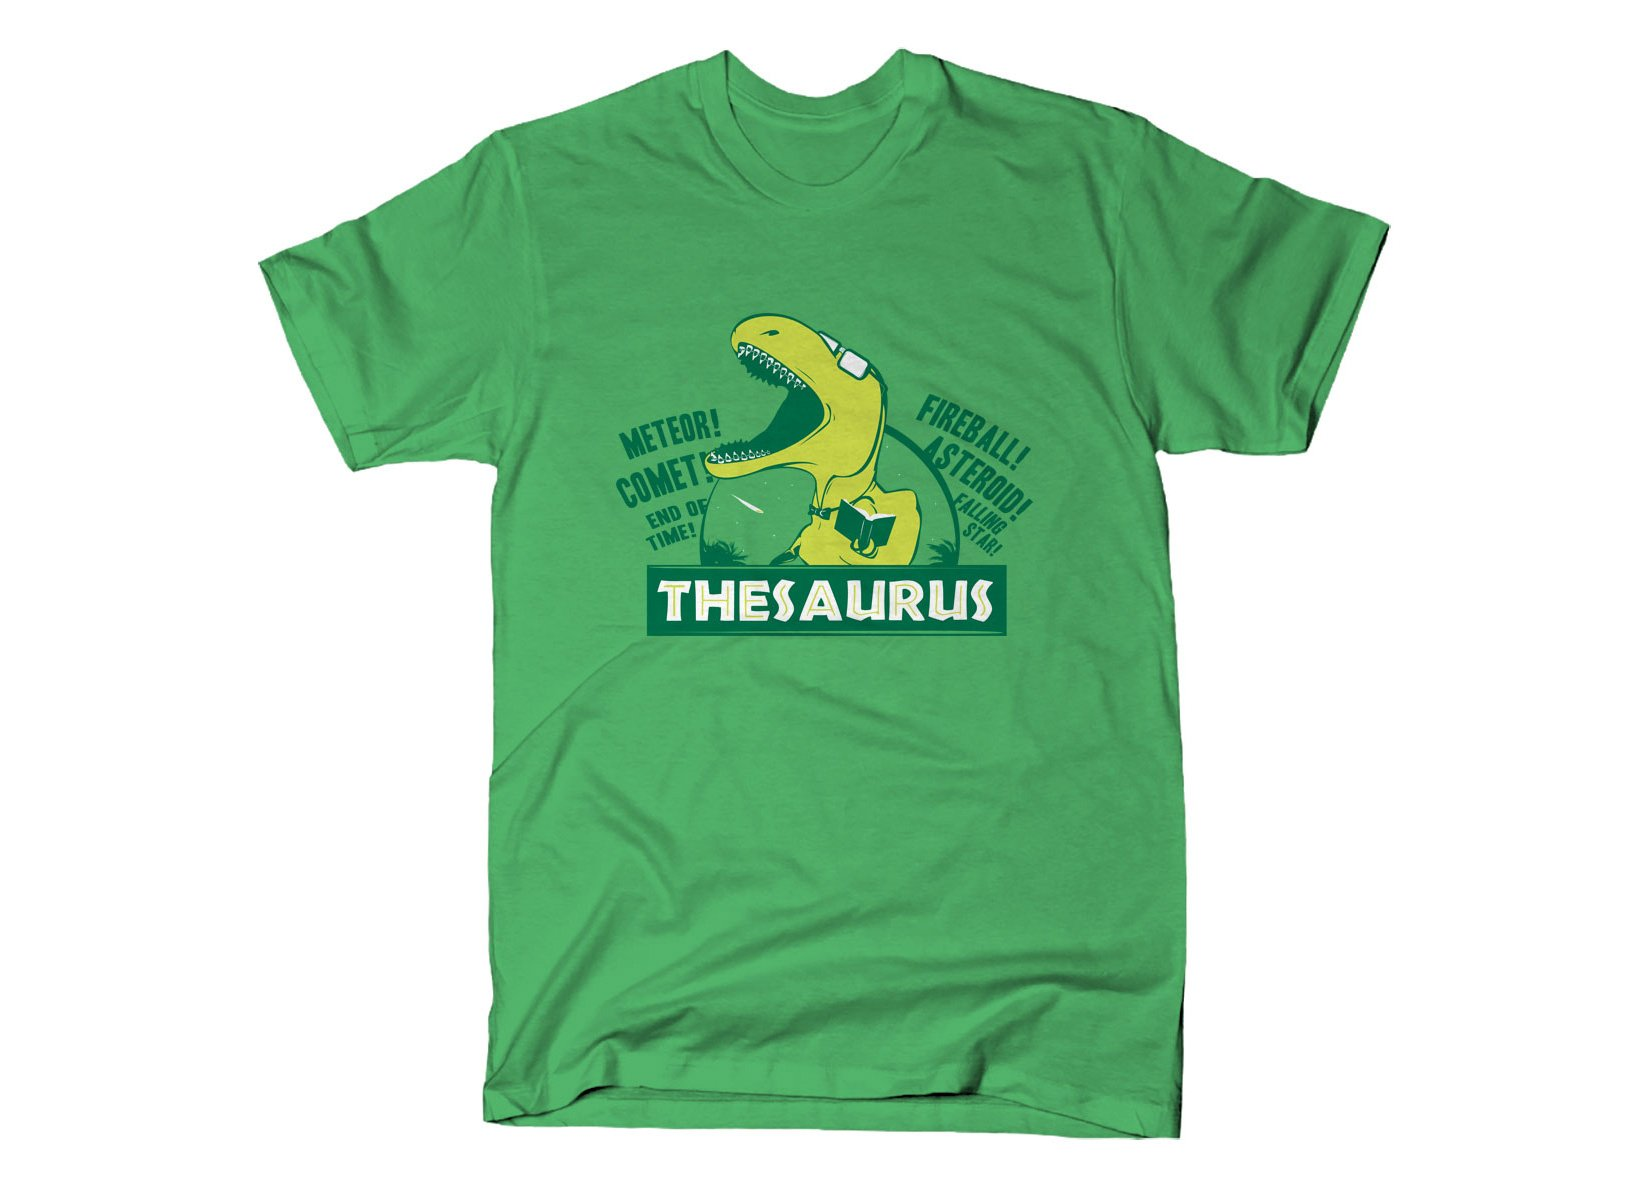 Thesaurus on Mens T-Shirt